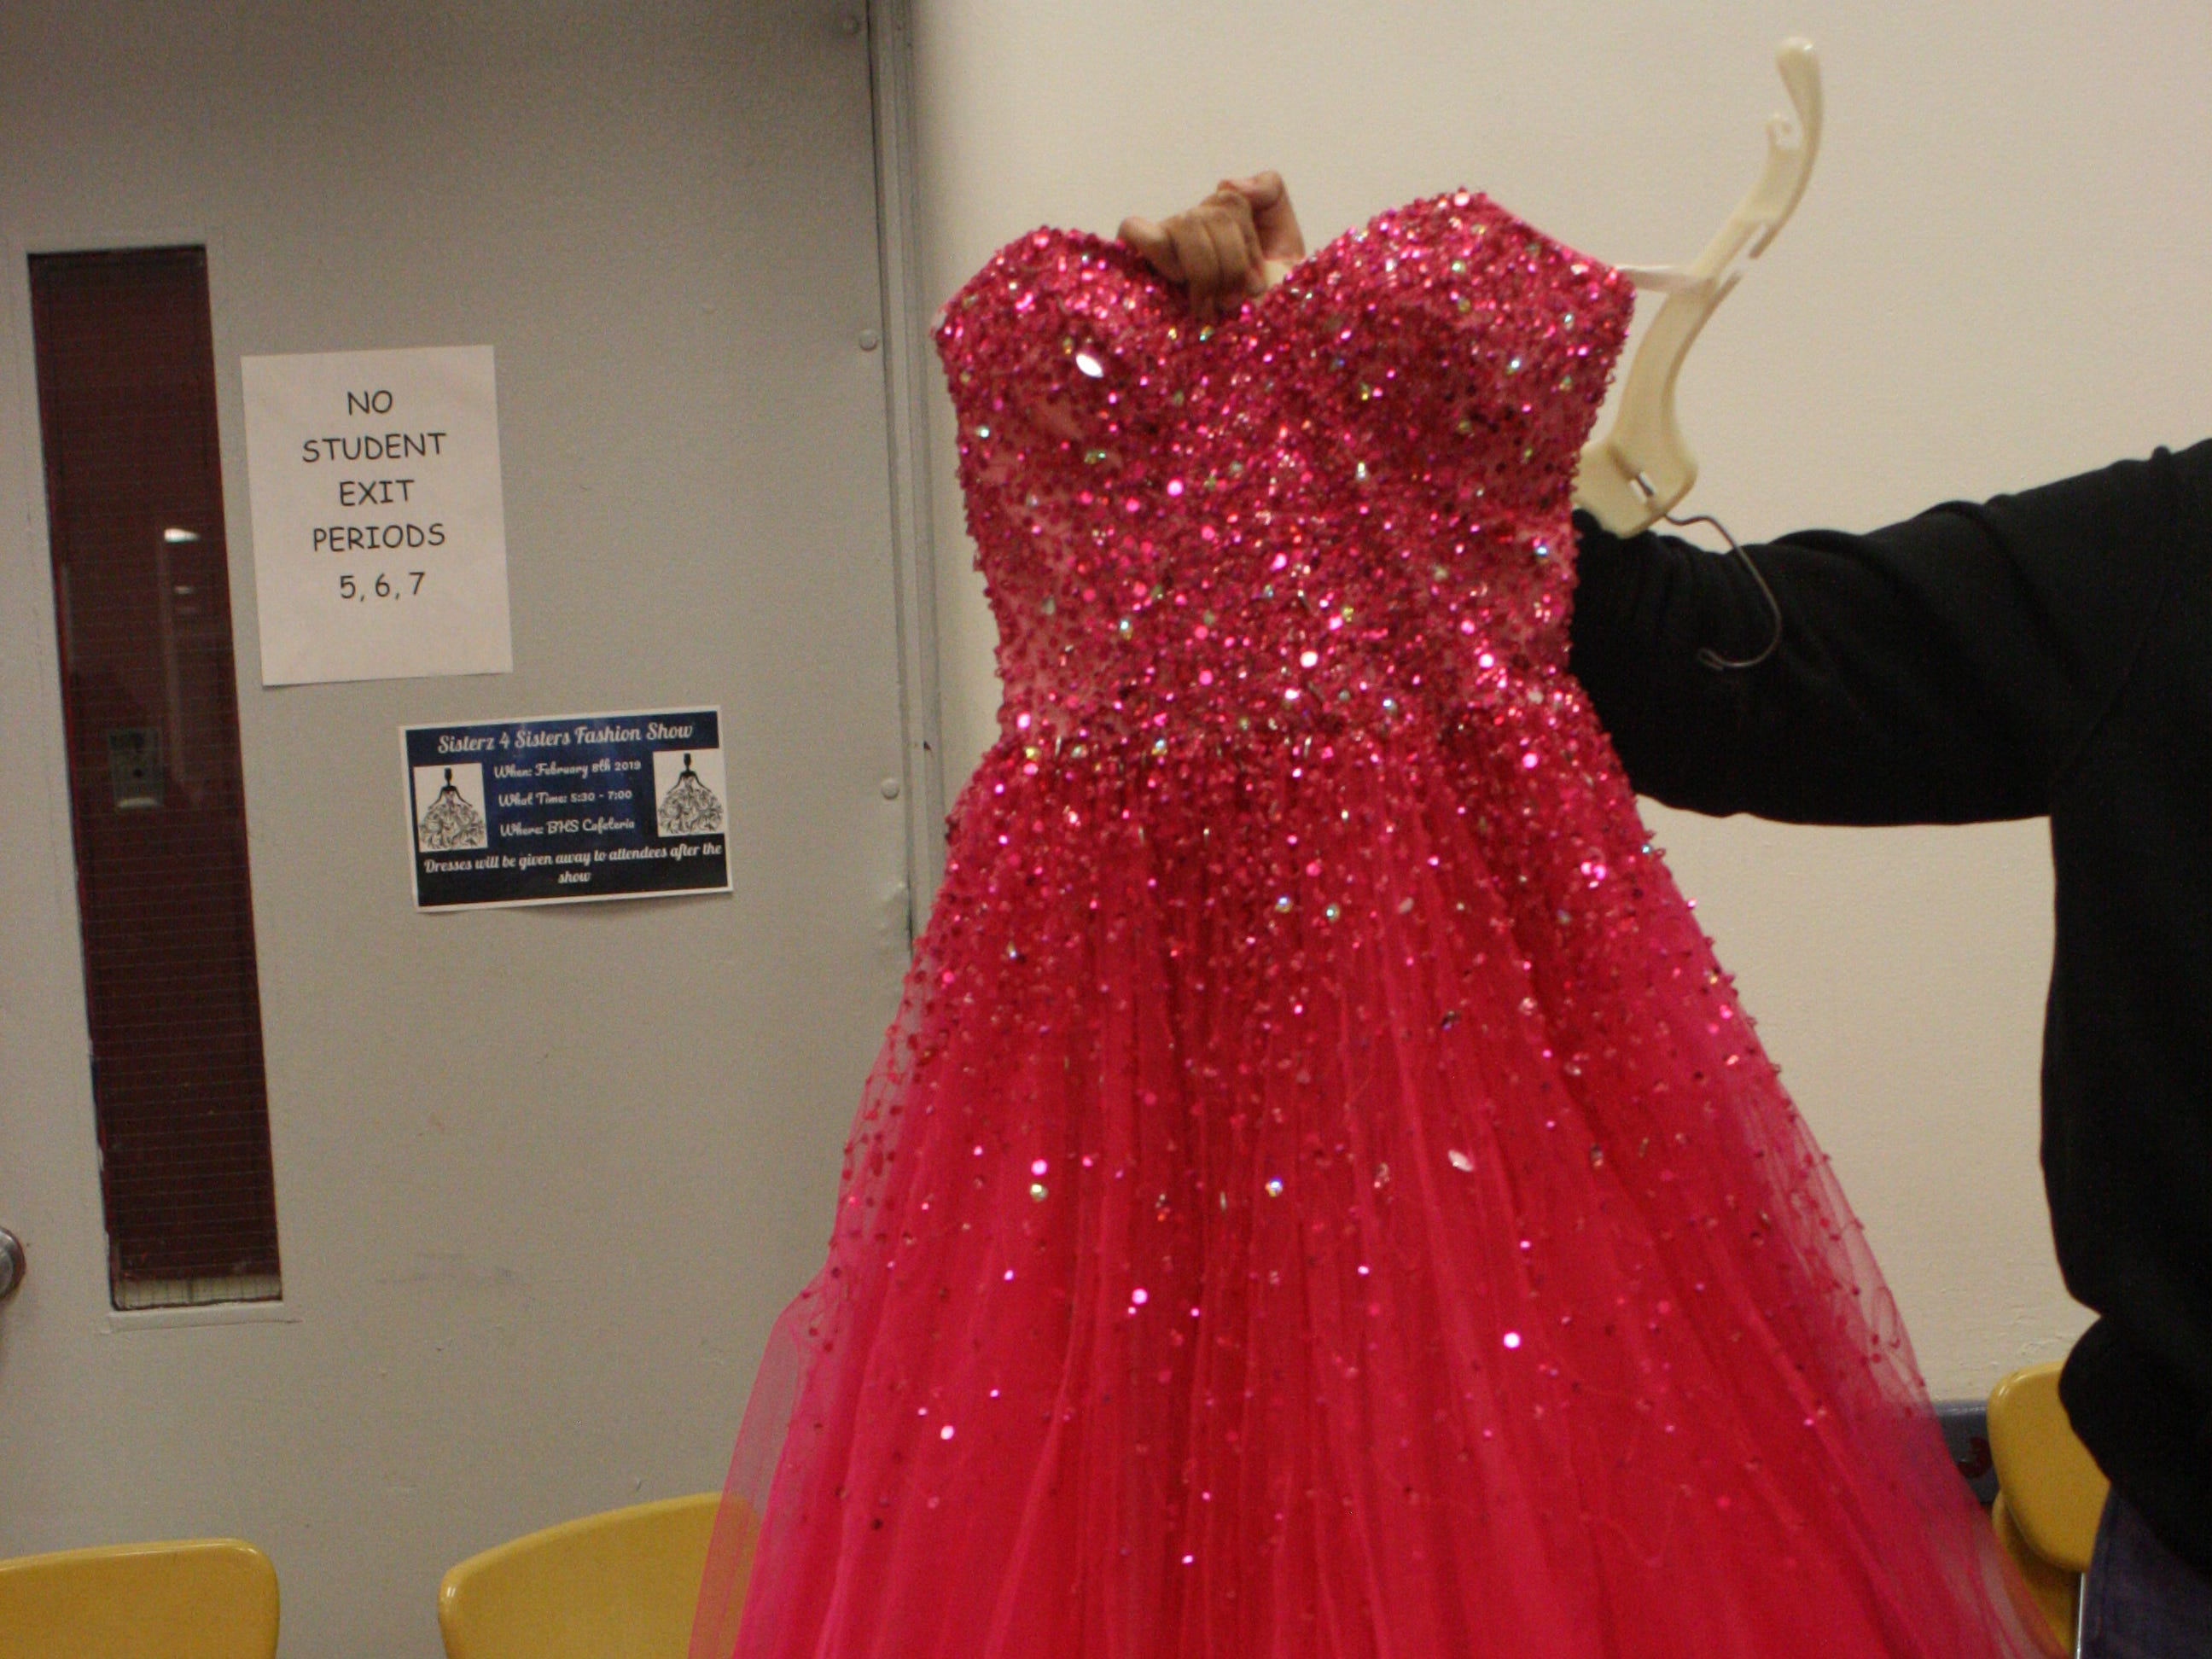 Binghamton High School's Sisterz 4 Sisters club held its prom fashion show and dress giveaway Friday evening at Binghamton High School.